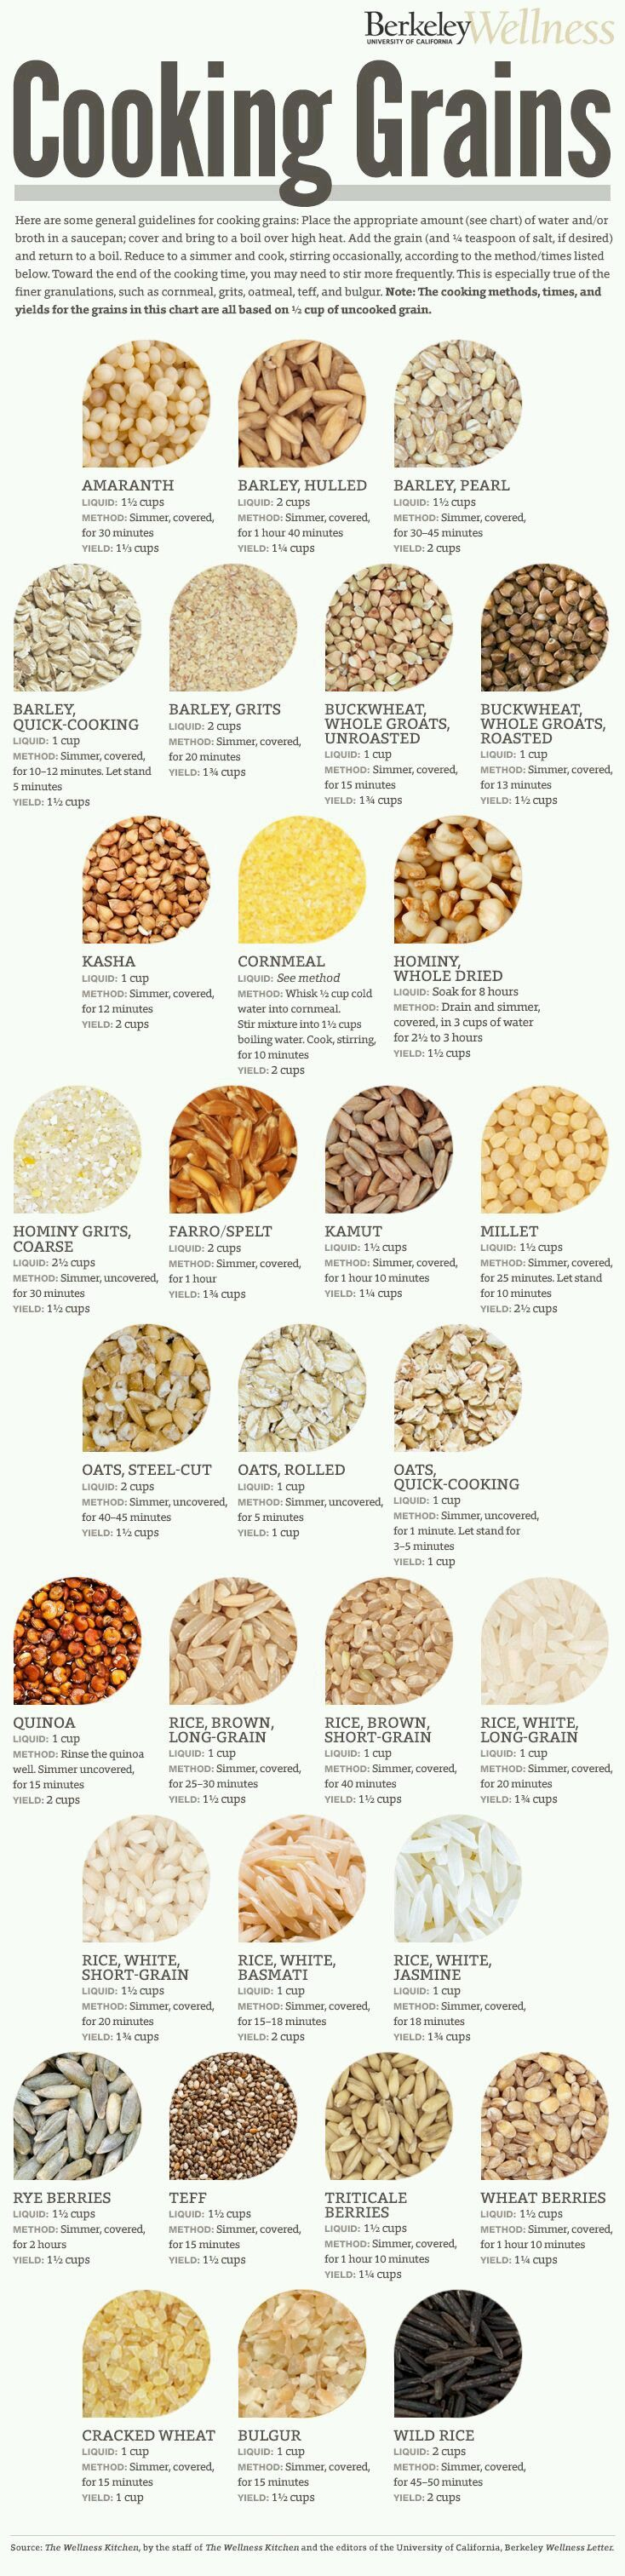 whole grains The american heart association has all the information you need on whole grains and including them as part of a heart-healthy diet.